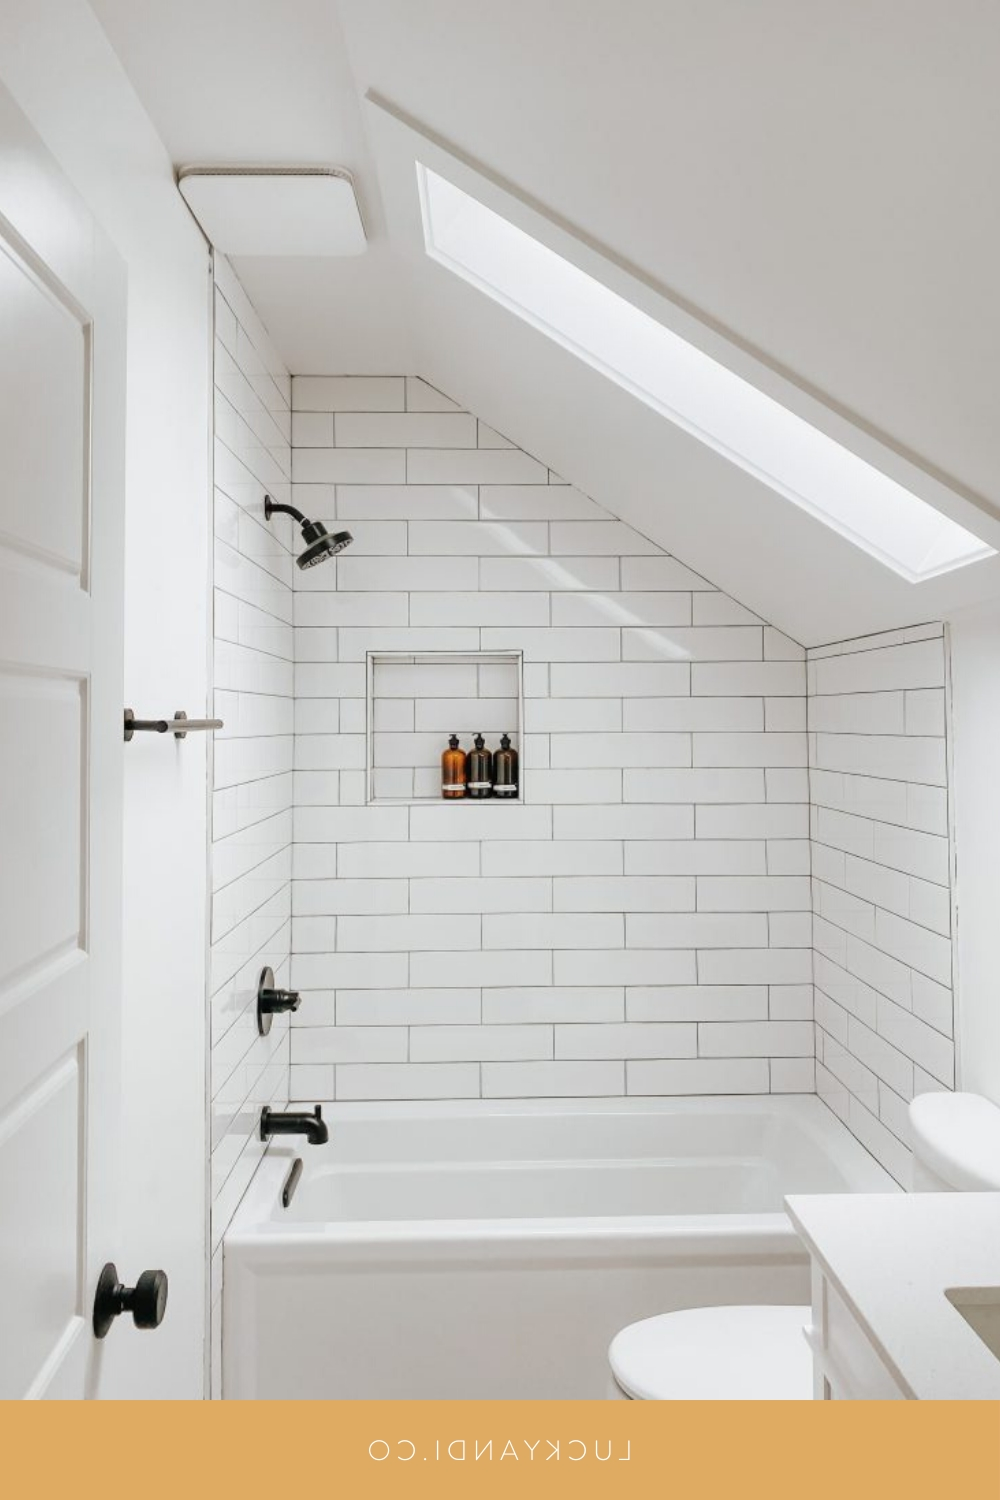 Upstairs Bathroom Reveal | Small Attic Bathroom, Sloped 20+ Small Bathroom With Sloped Ceiling Ideas